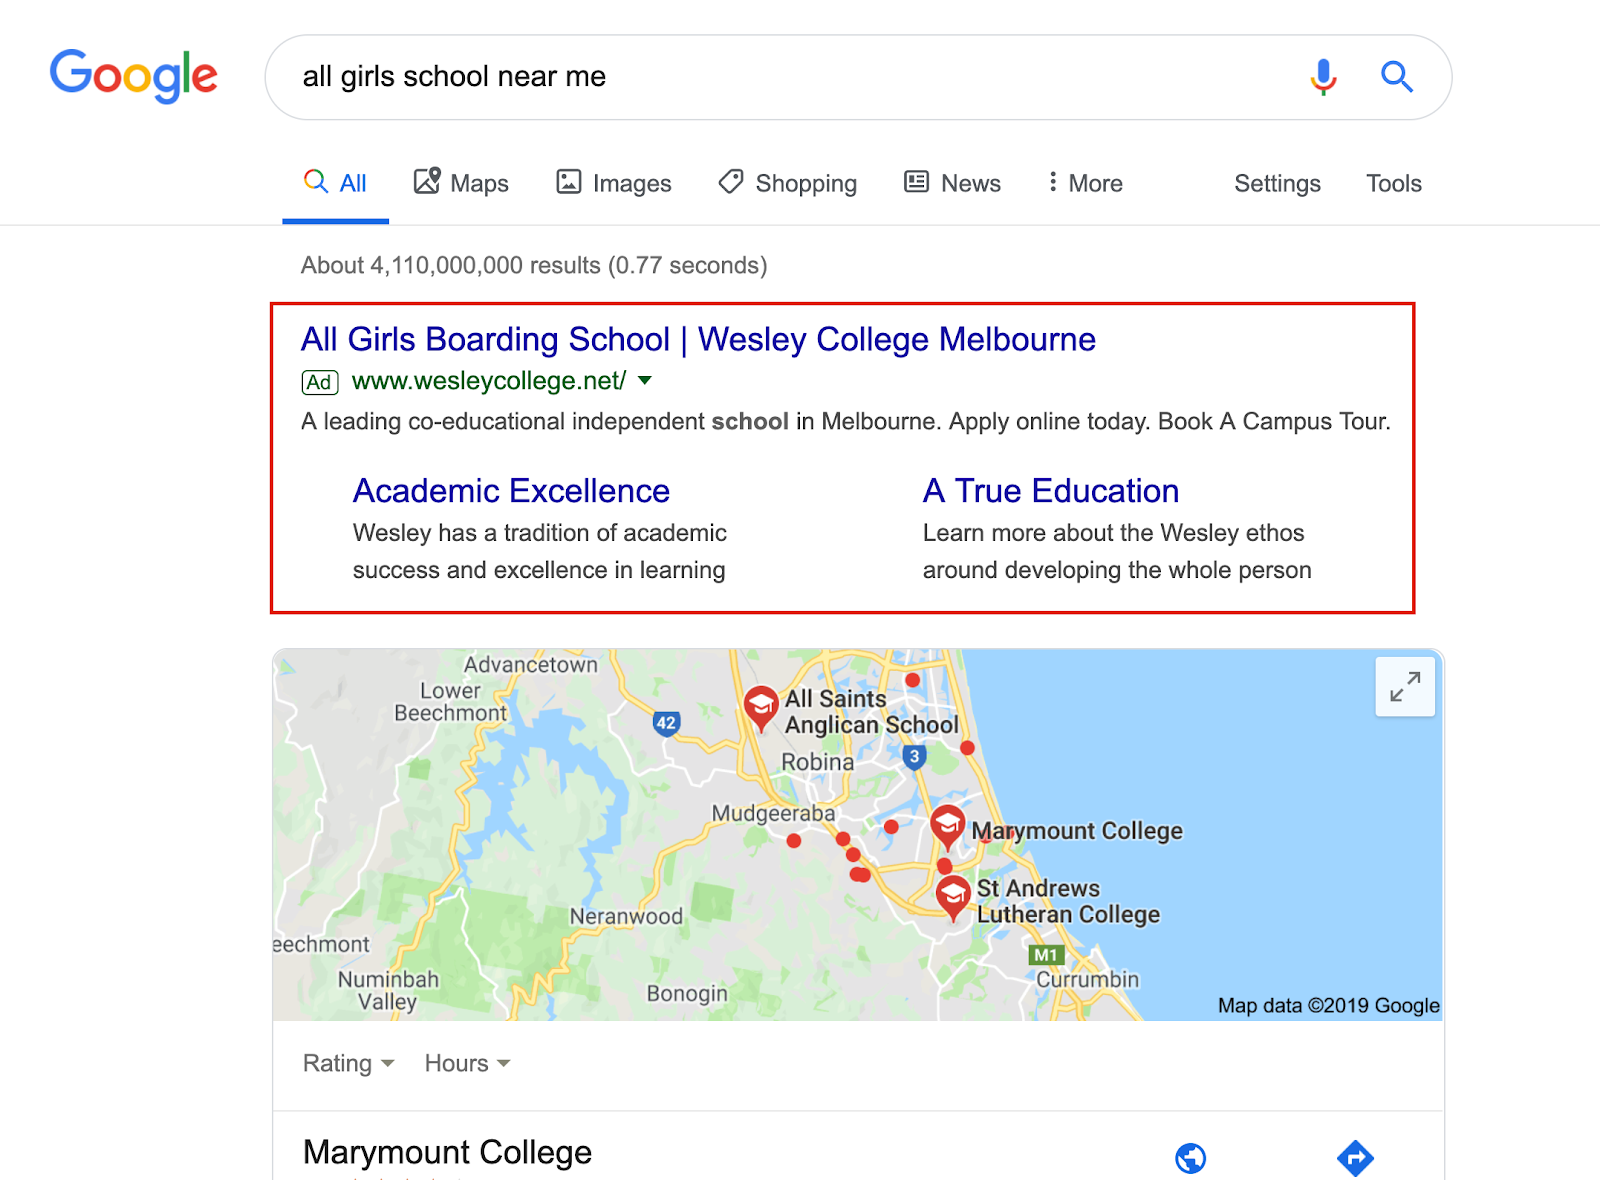 Get Started With Google Ads for Your School